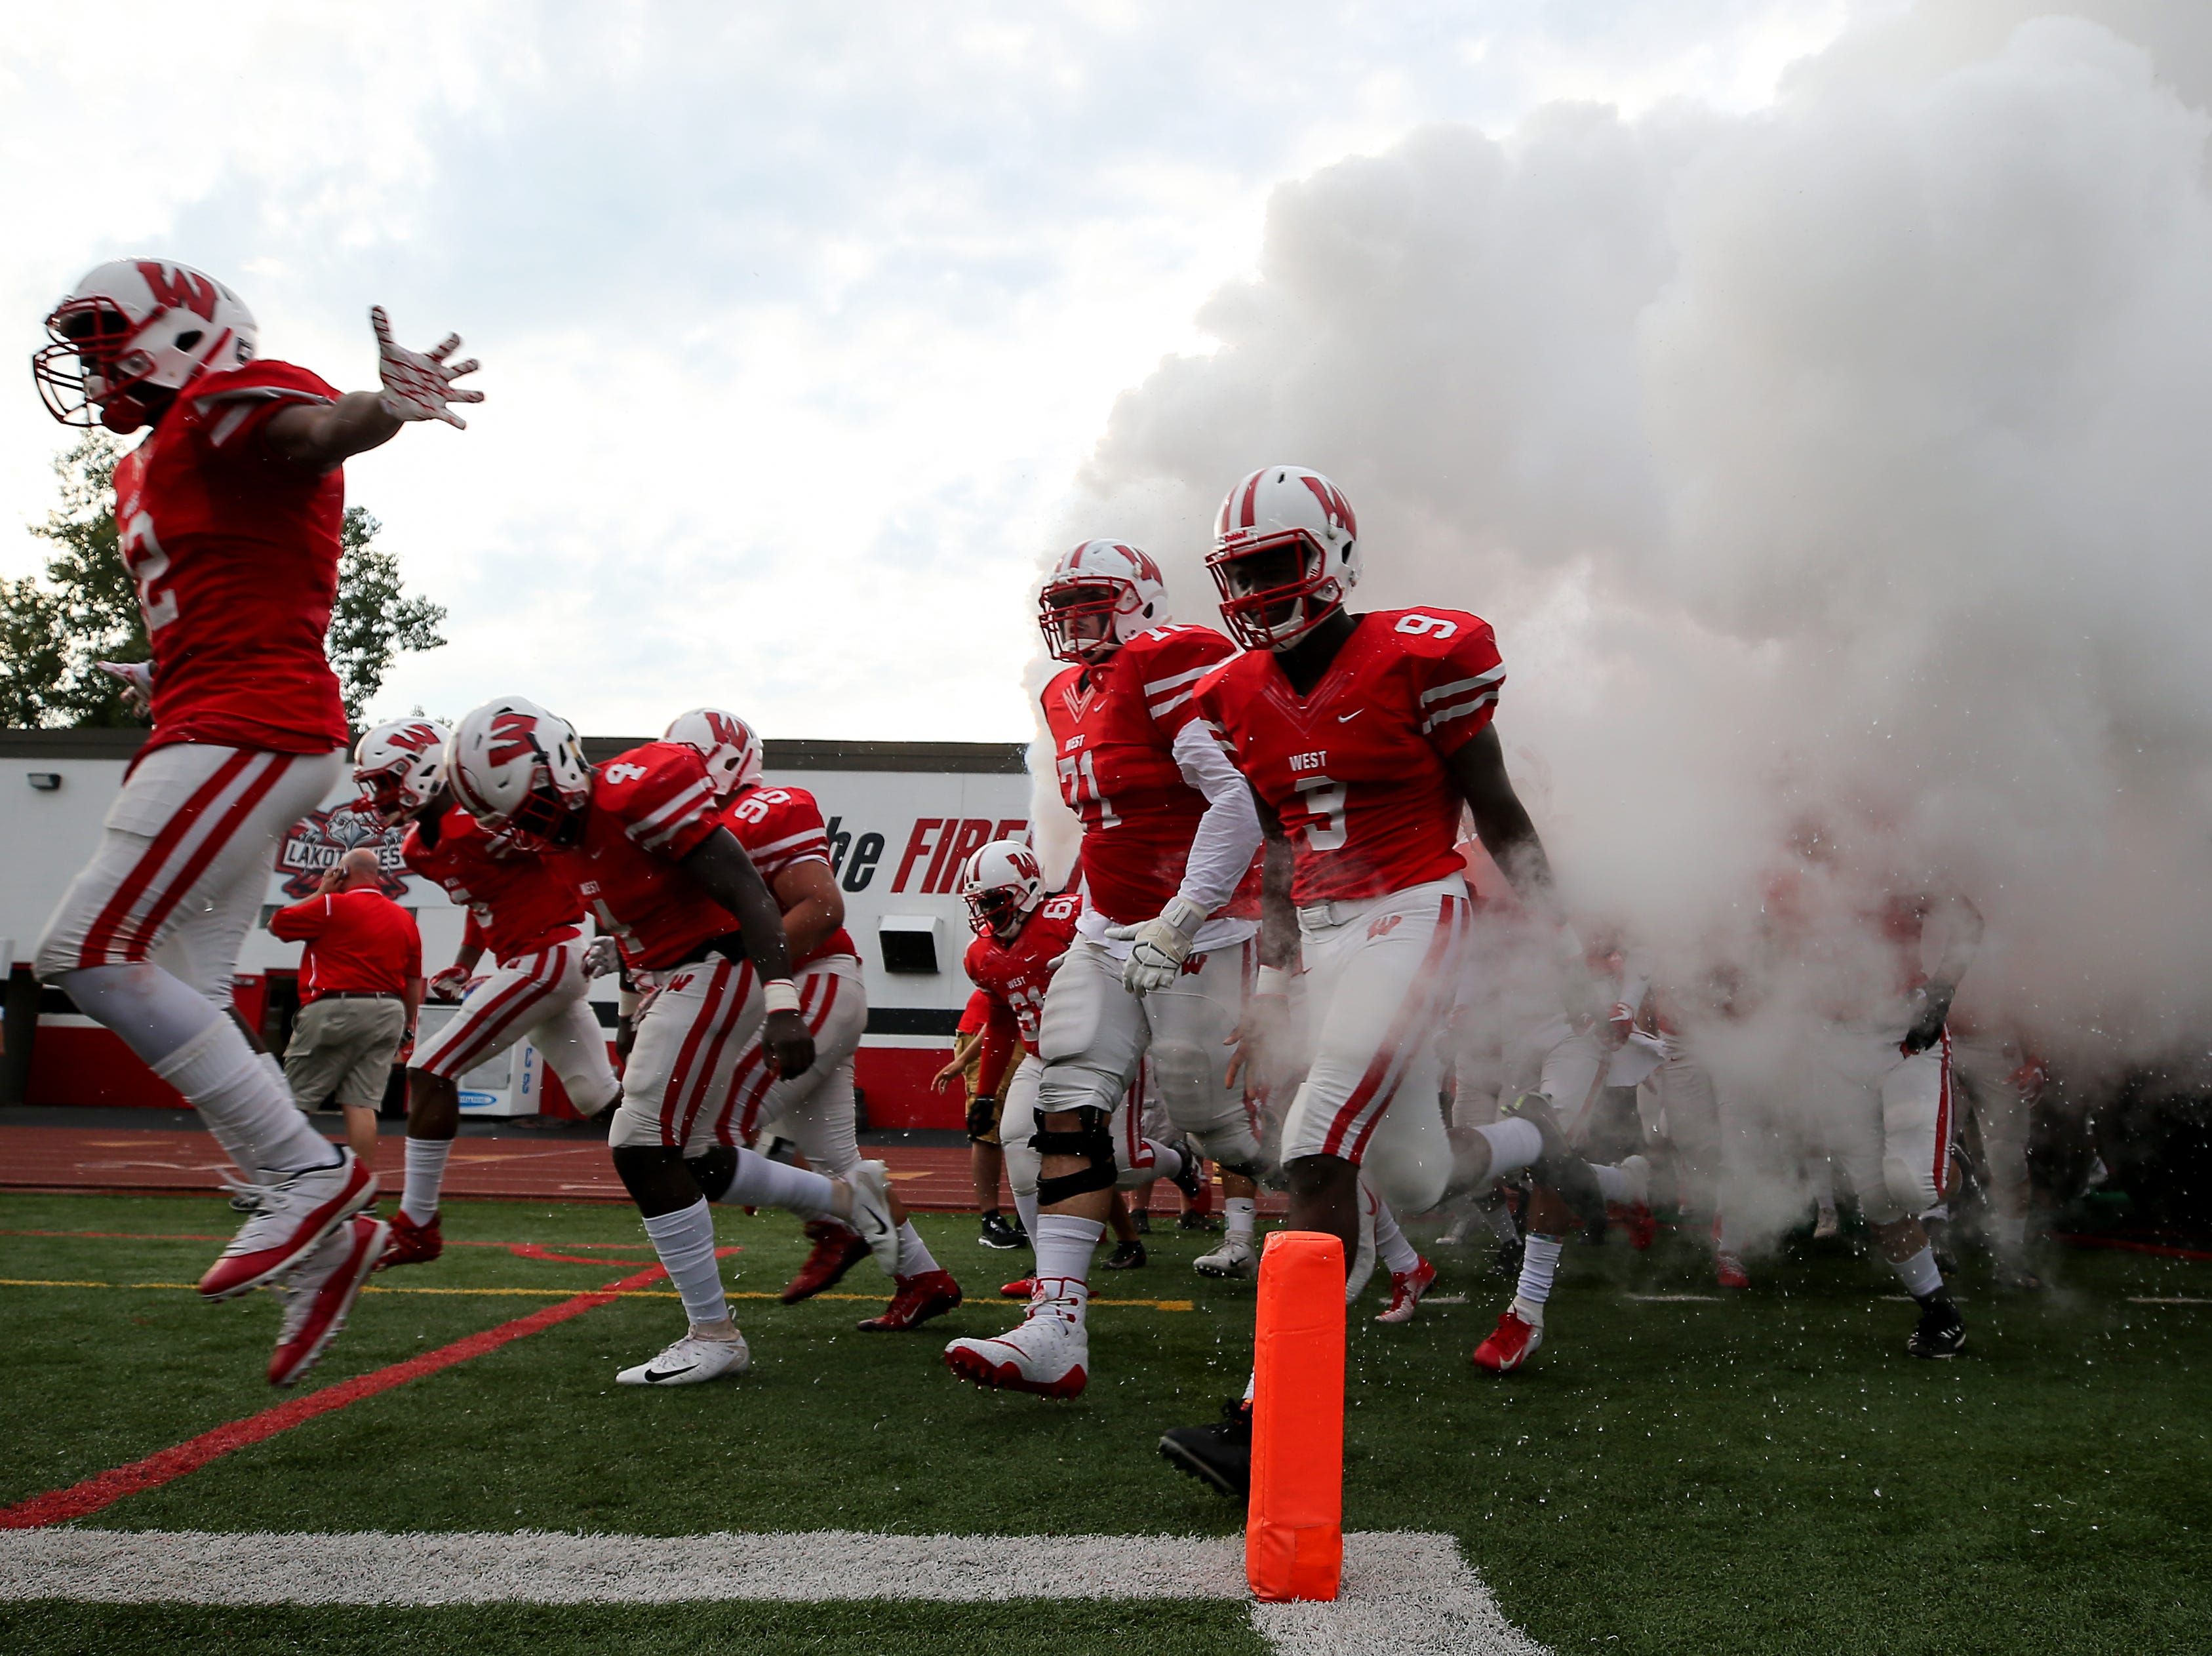 The Lakota West Firebirds take the field before kickoff of a high school football game between the Oak Hills Highlanders and Lakota West Firebirds, Friday, Sept. 21, 2018, at Lakota West High School in West Chester Township, Ohio.